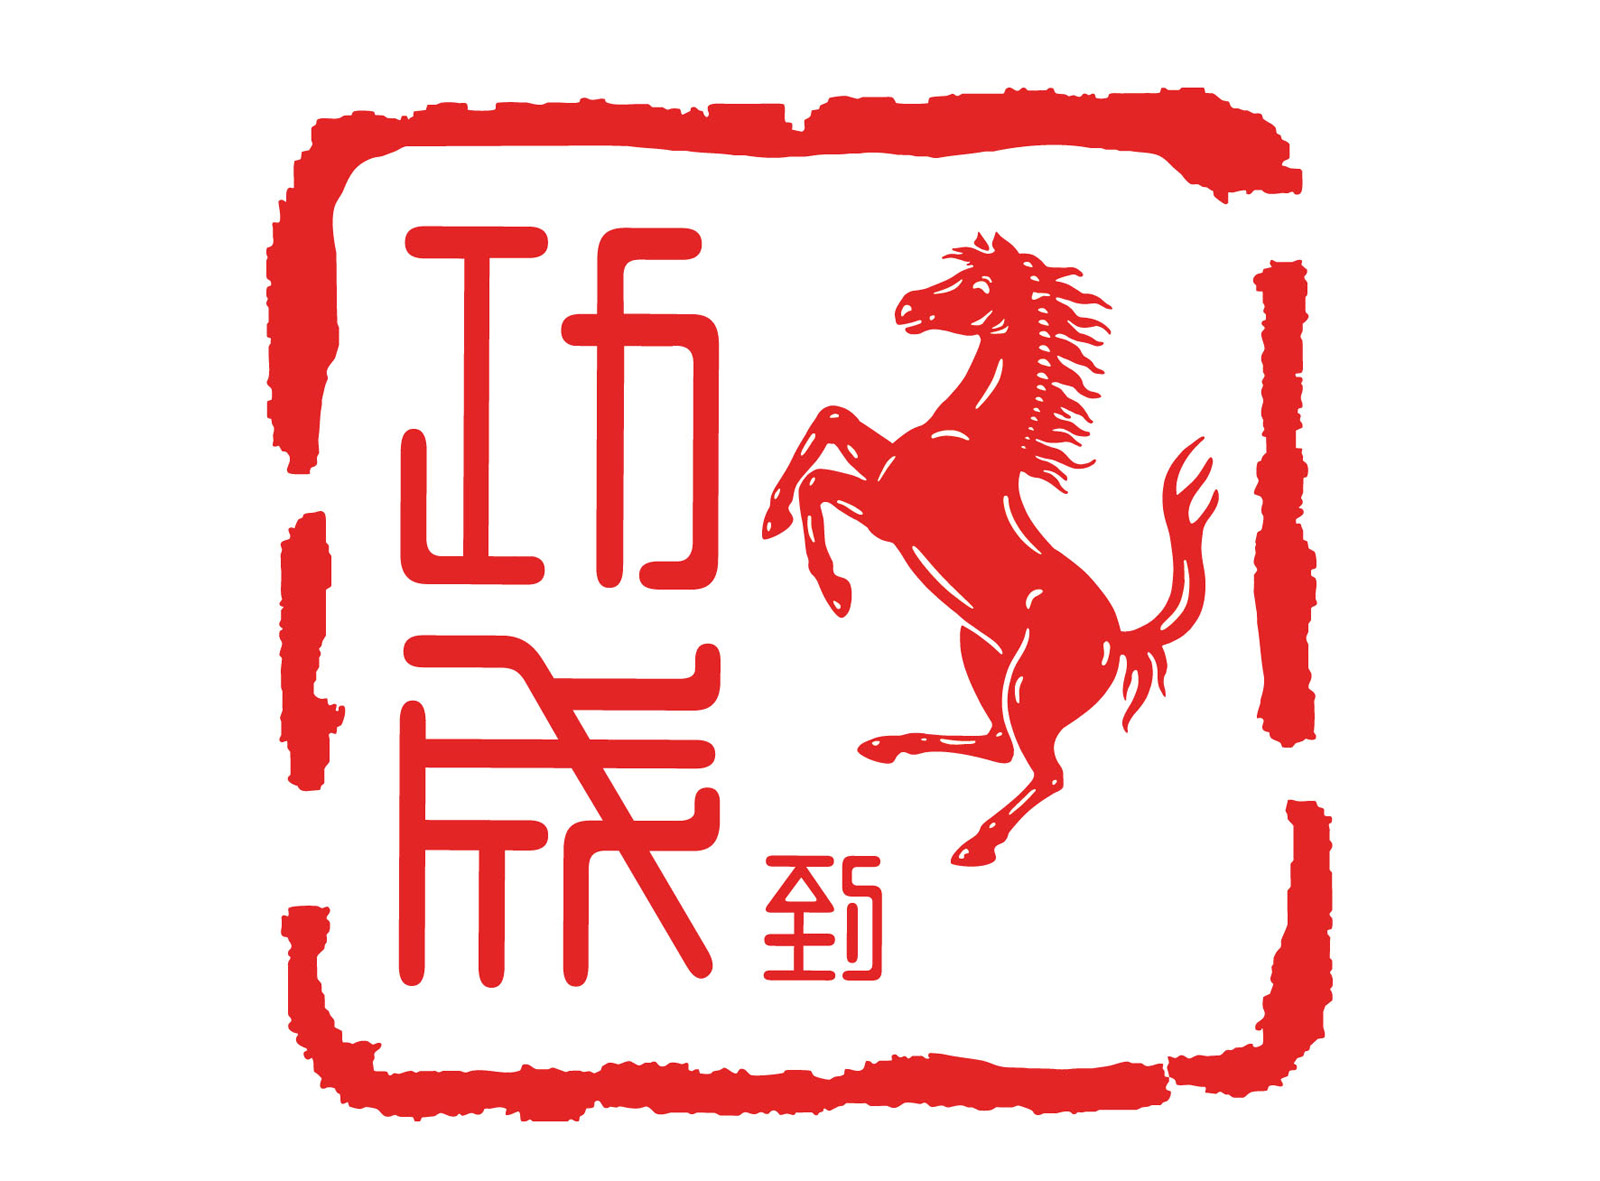 2017 La Auto Show >> Ferrari Marks Chinese Year Of The Horse With Special Logo